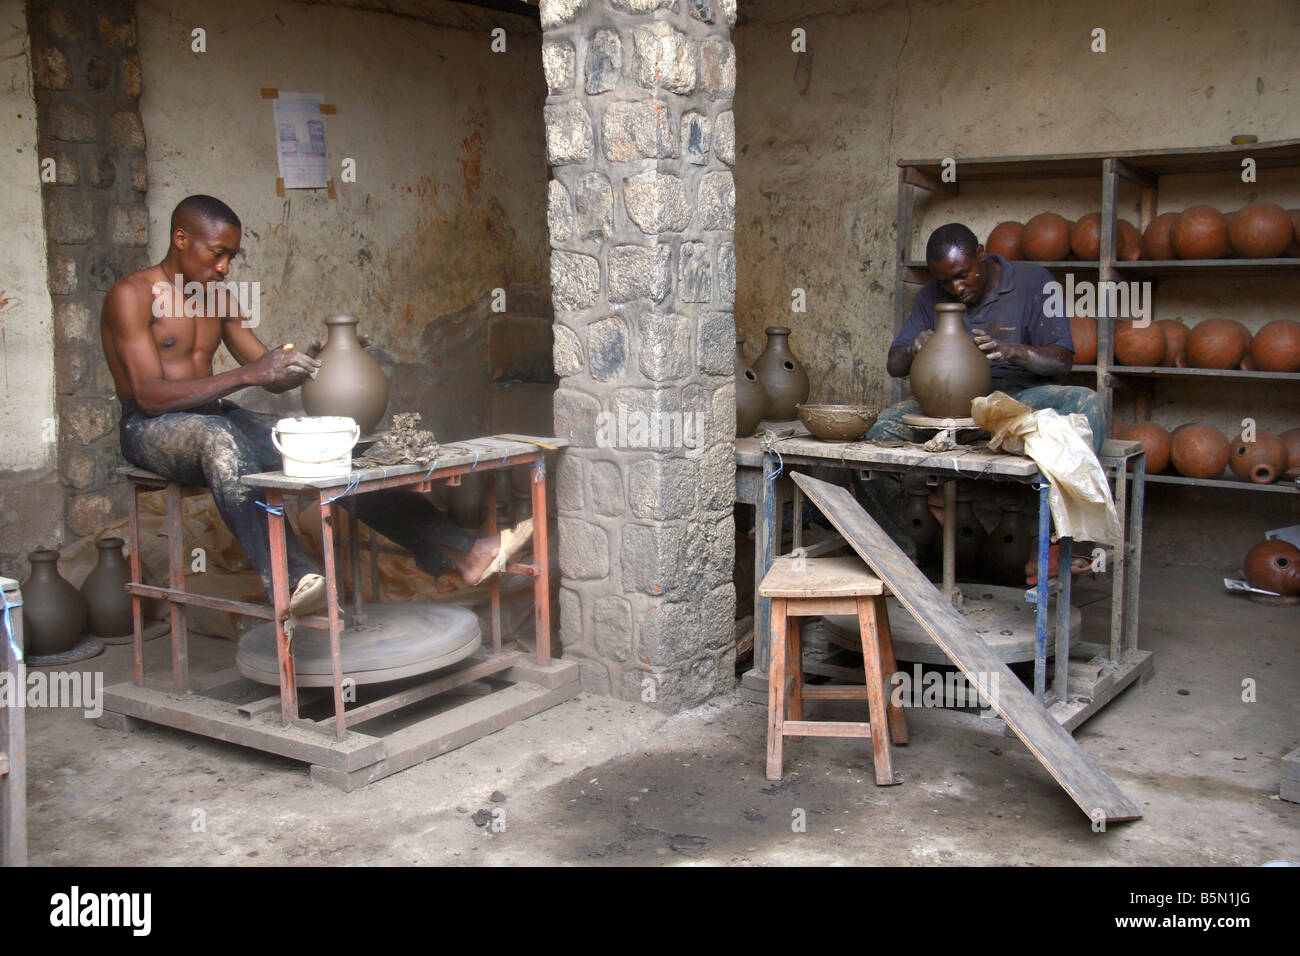 Pottery workers throwing pots at Prespot pottery works Bamessing Northwest Province Cameroon - Stock Image